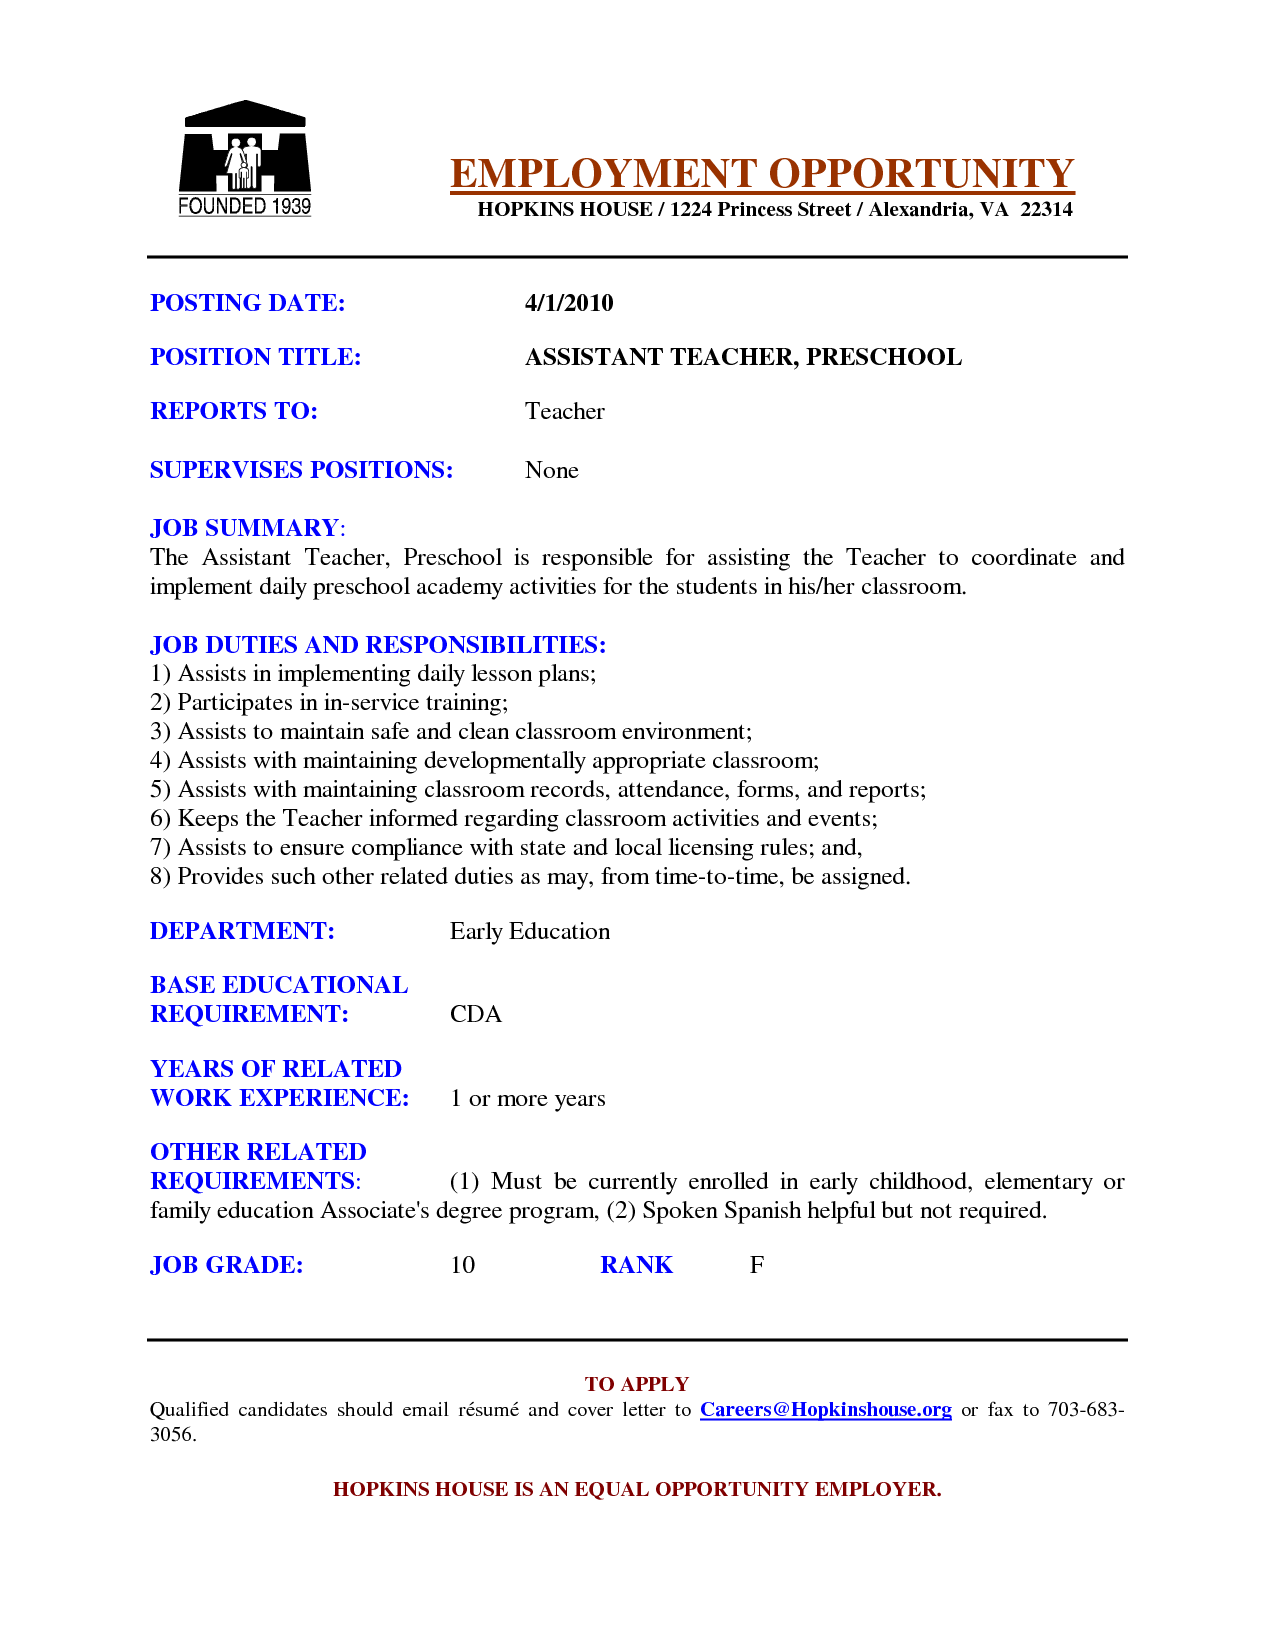 preschool assistant teacher resume examples - Google Search ...